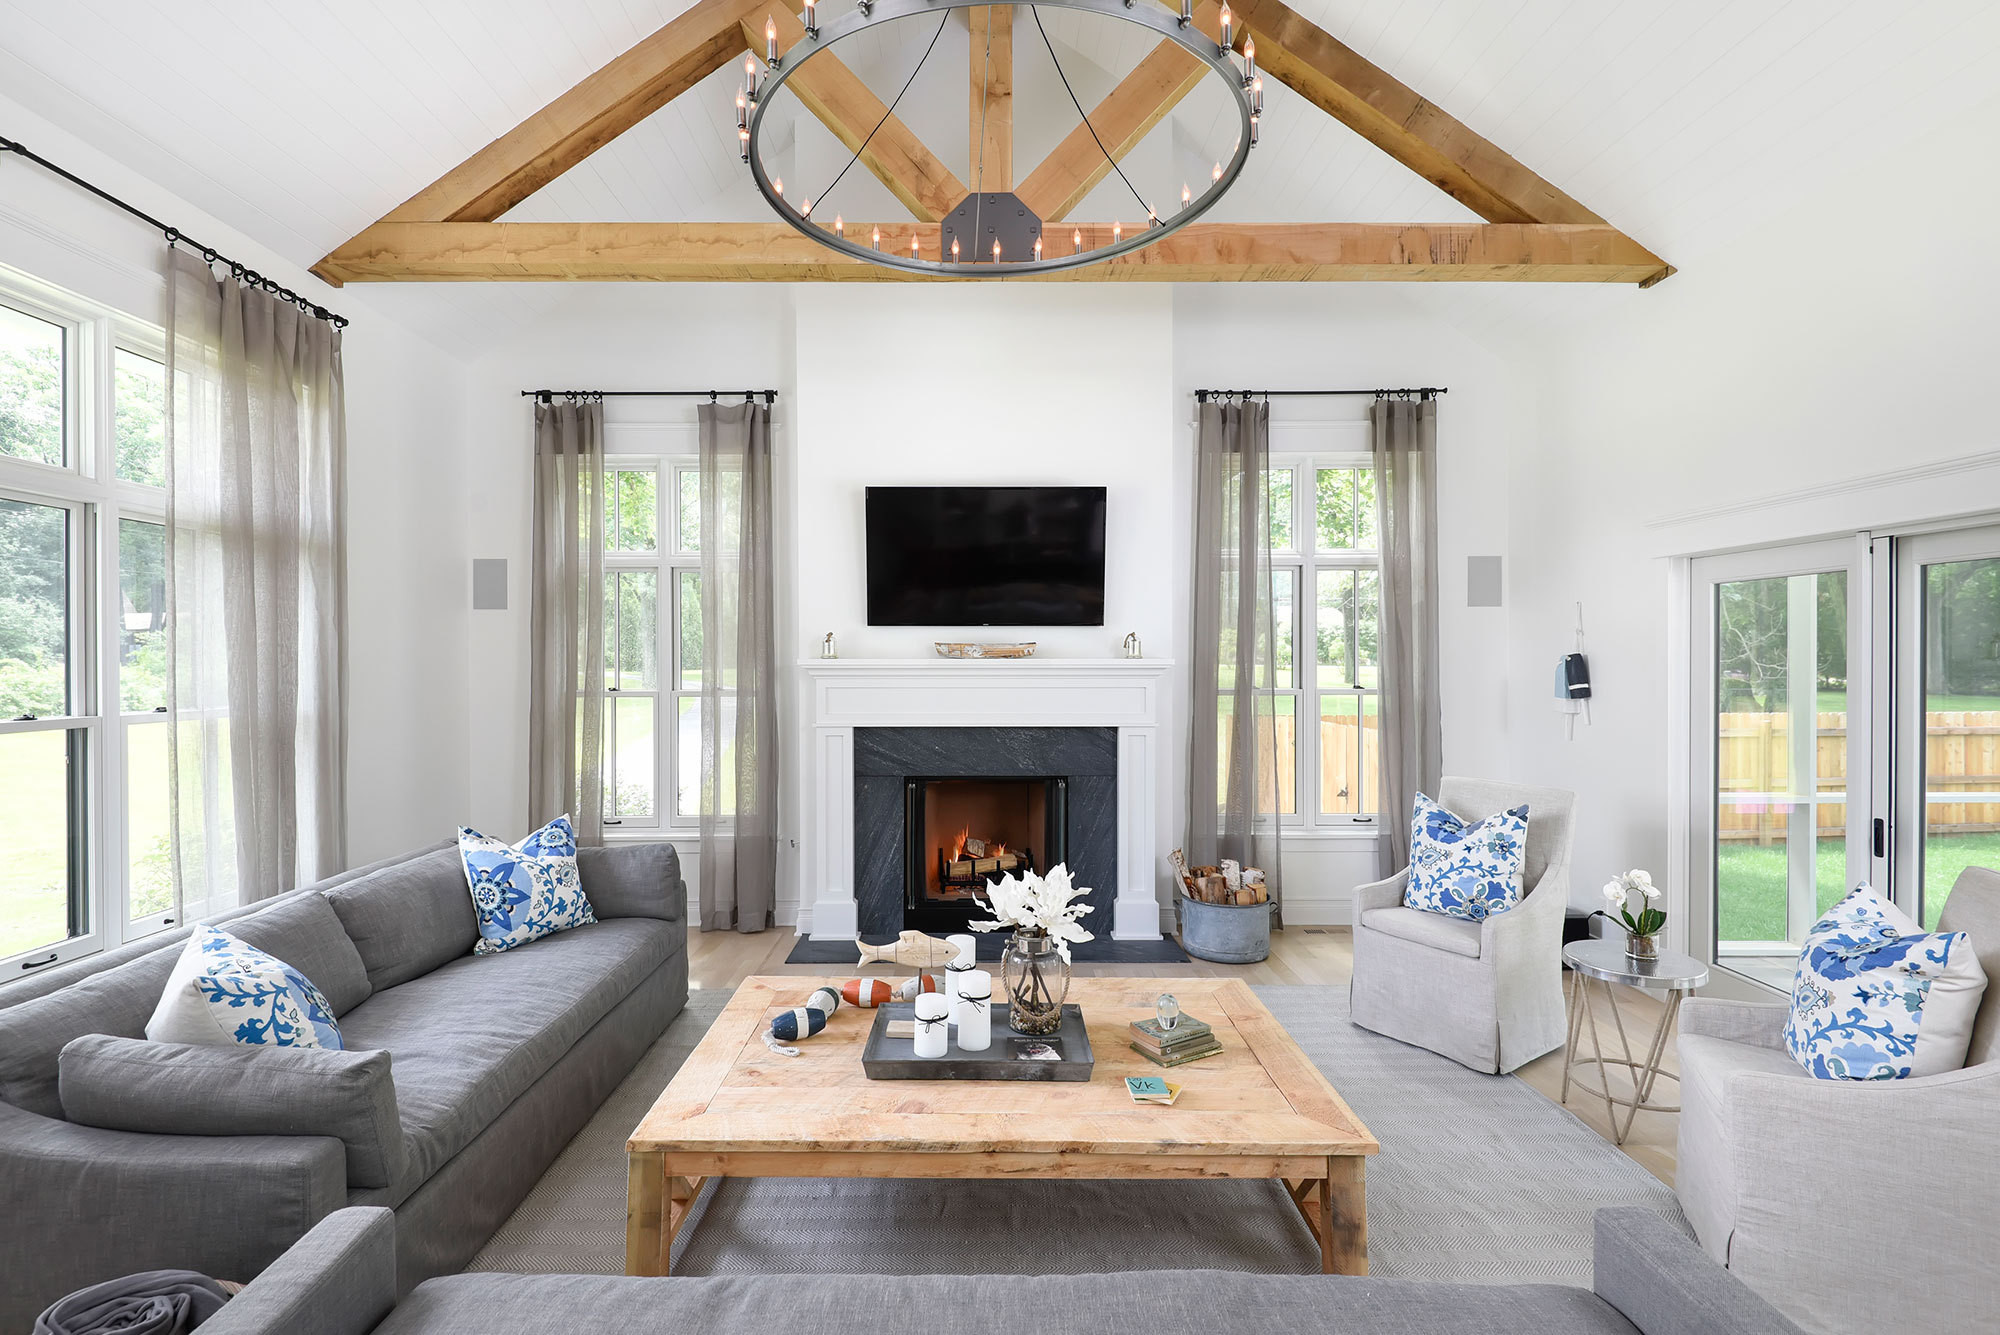 The living room's vaulted ceiling features a rustic touch—rough-sawn white-oak beams with metal brackets.